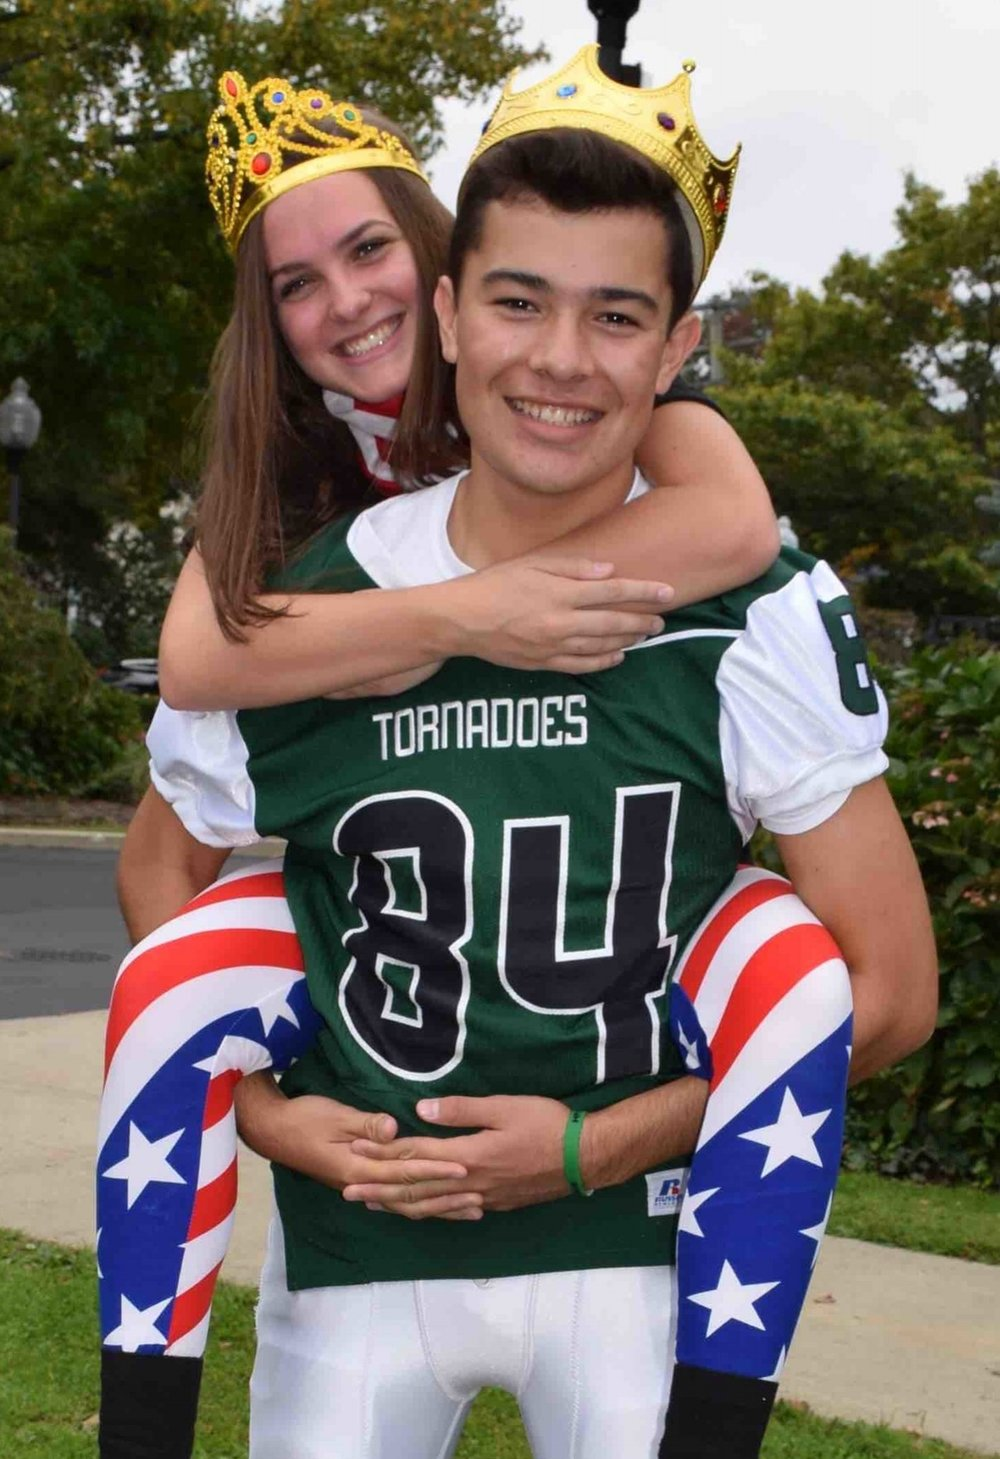 Photos courtesy of the Harborfields School District omecoming queen Jessica Martino pictured with homecoming king Koby Cordova during Harborfields' homecoming festivities.